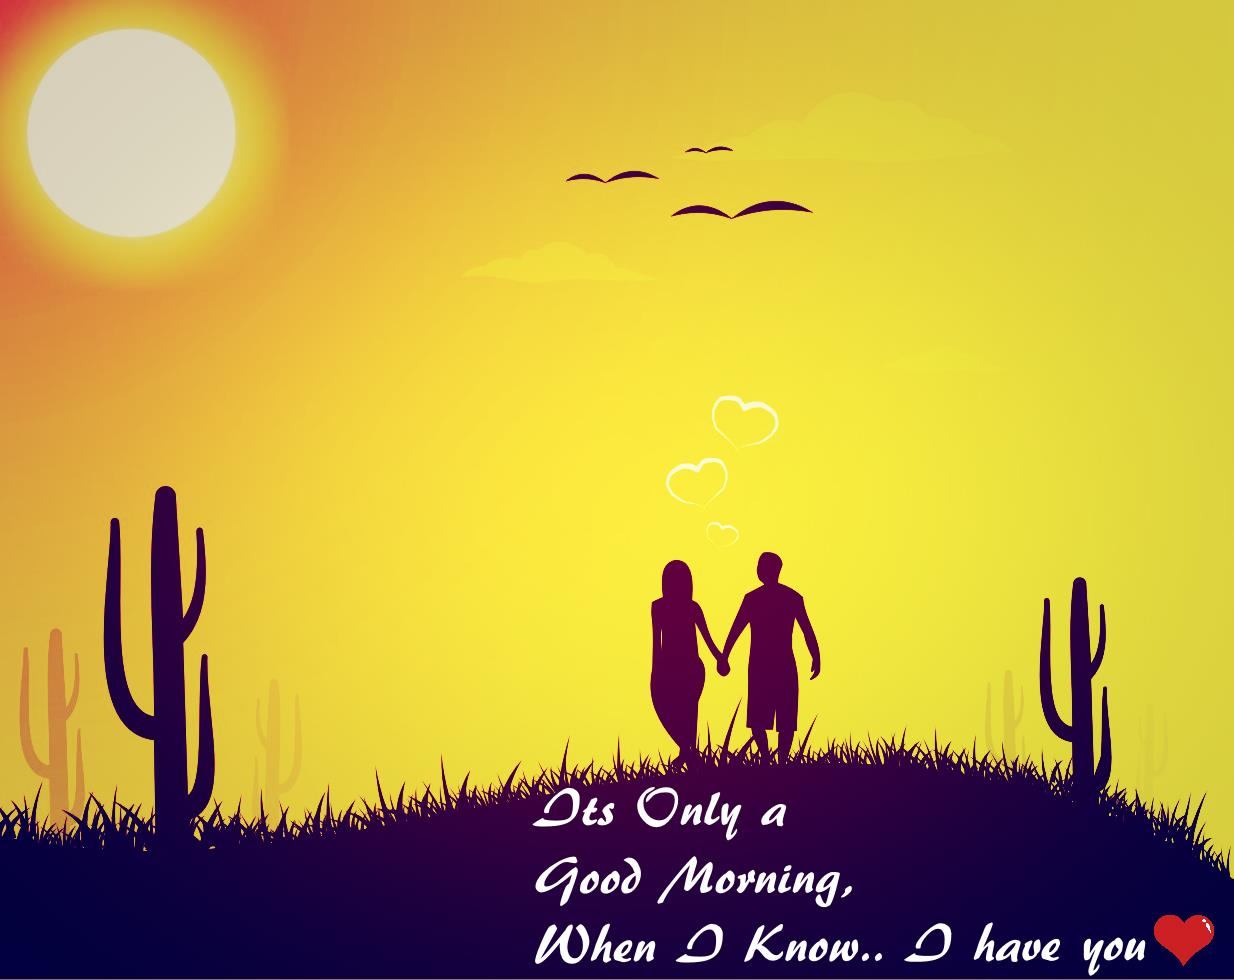 Good Morning Love Wallpaper For Her : Good Morning Wallpapers Free Download